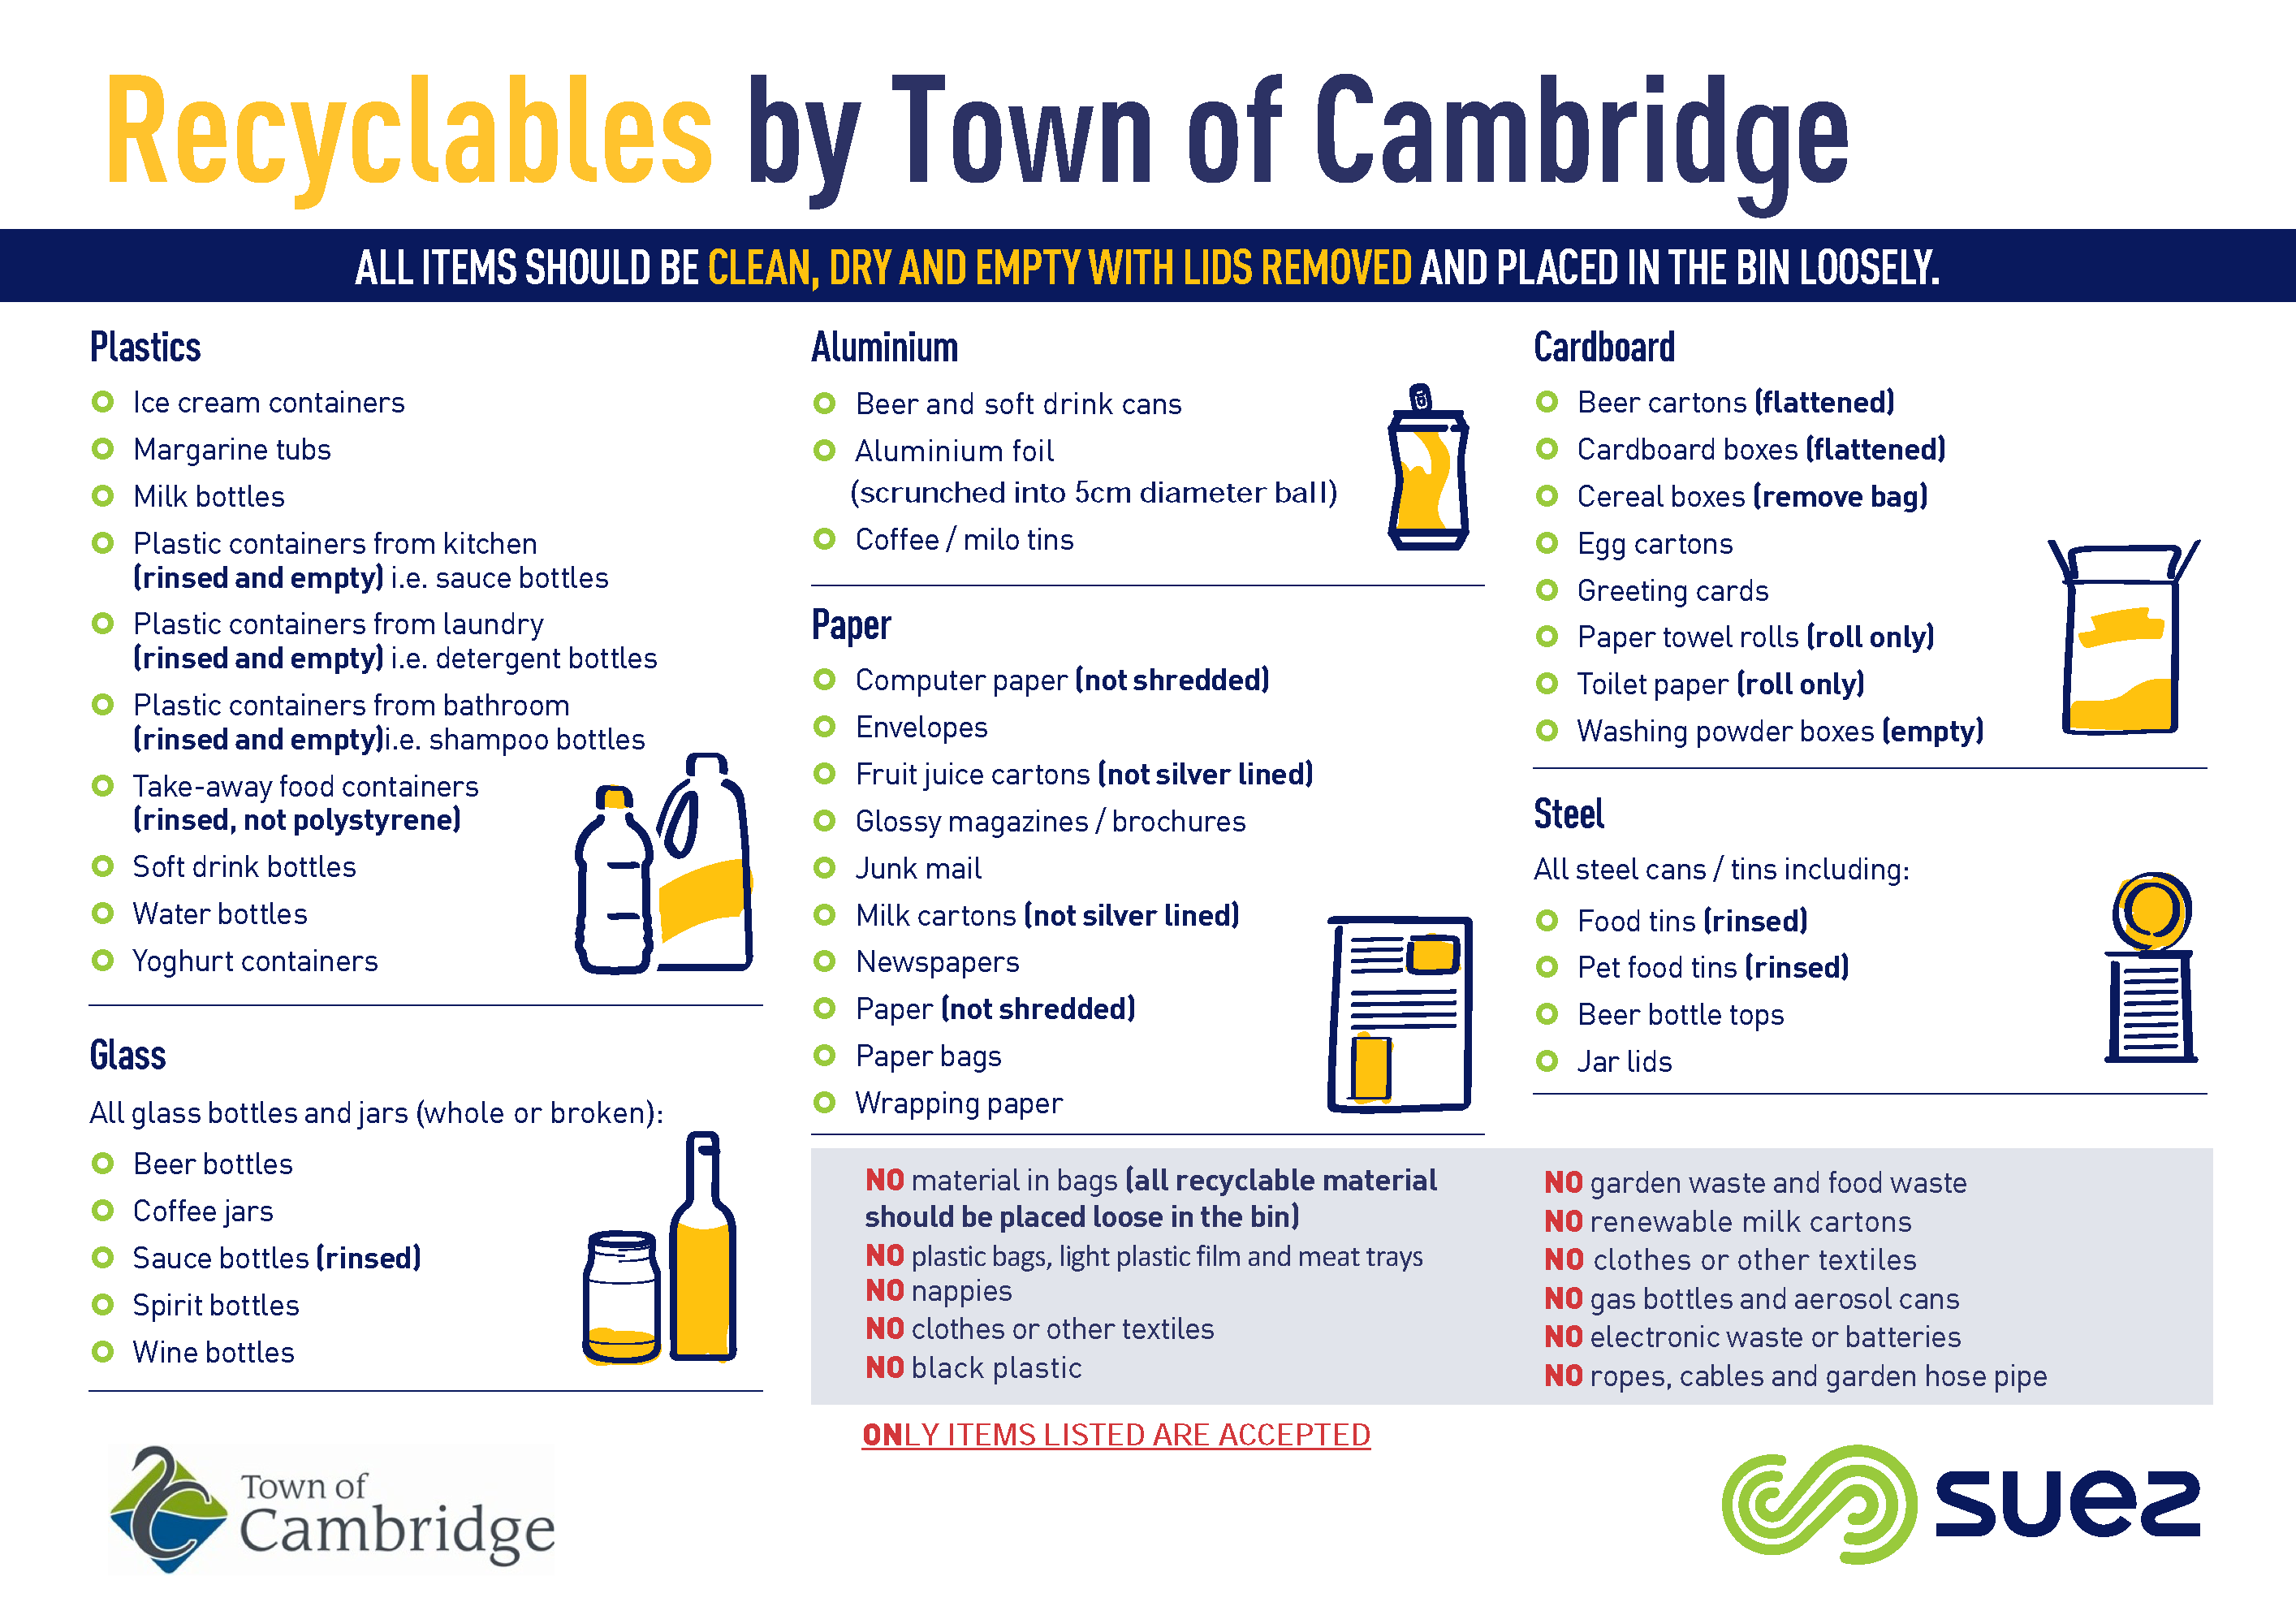 Poster_Recyclables Accepted_Cambridge (Feb 2020).png